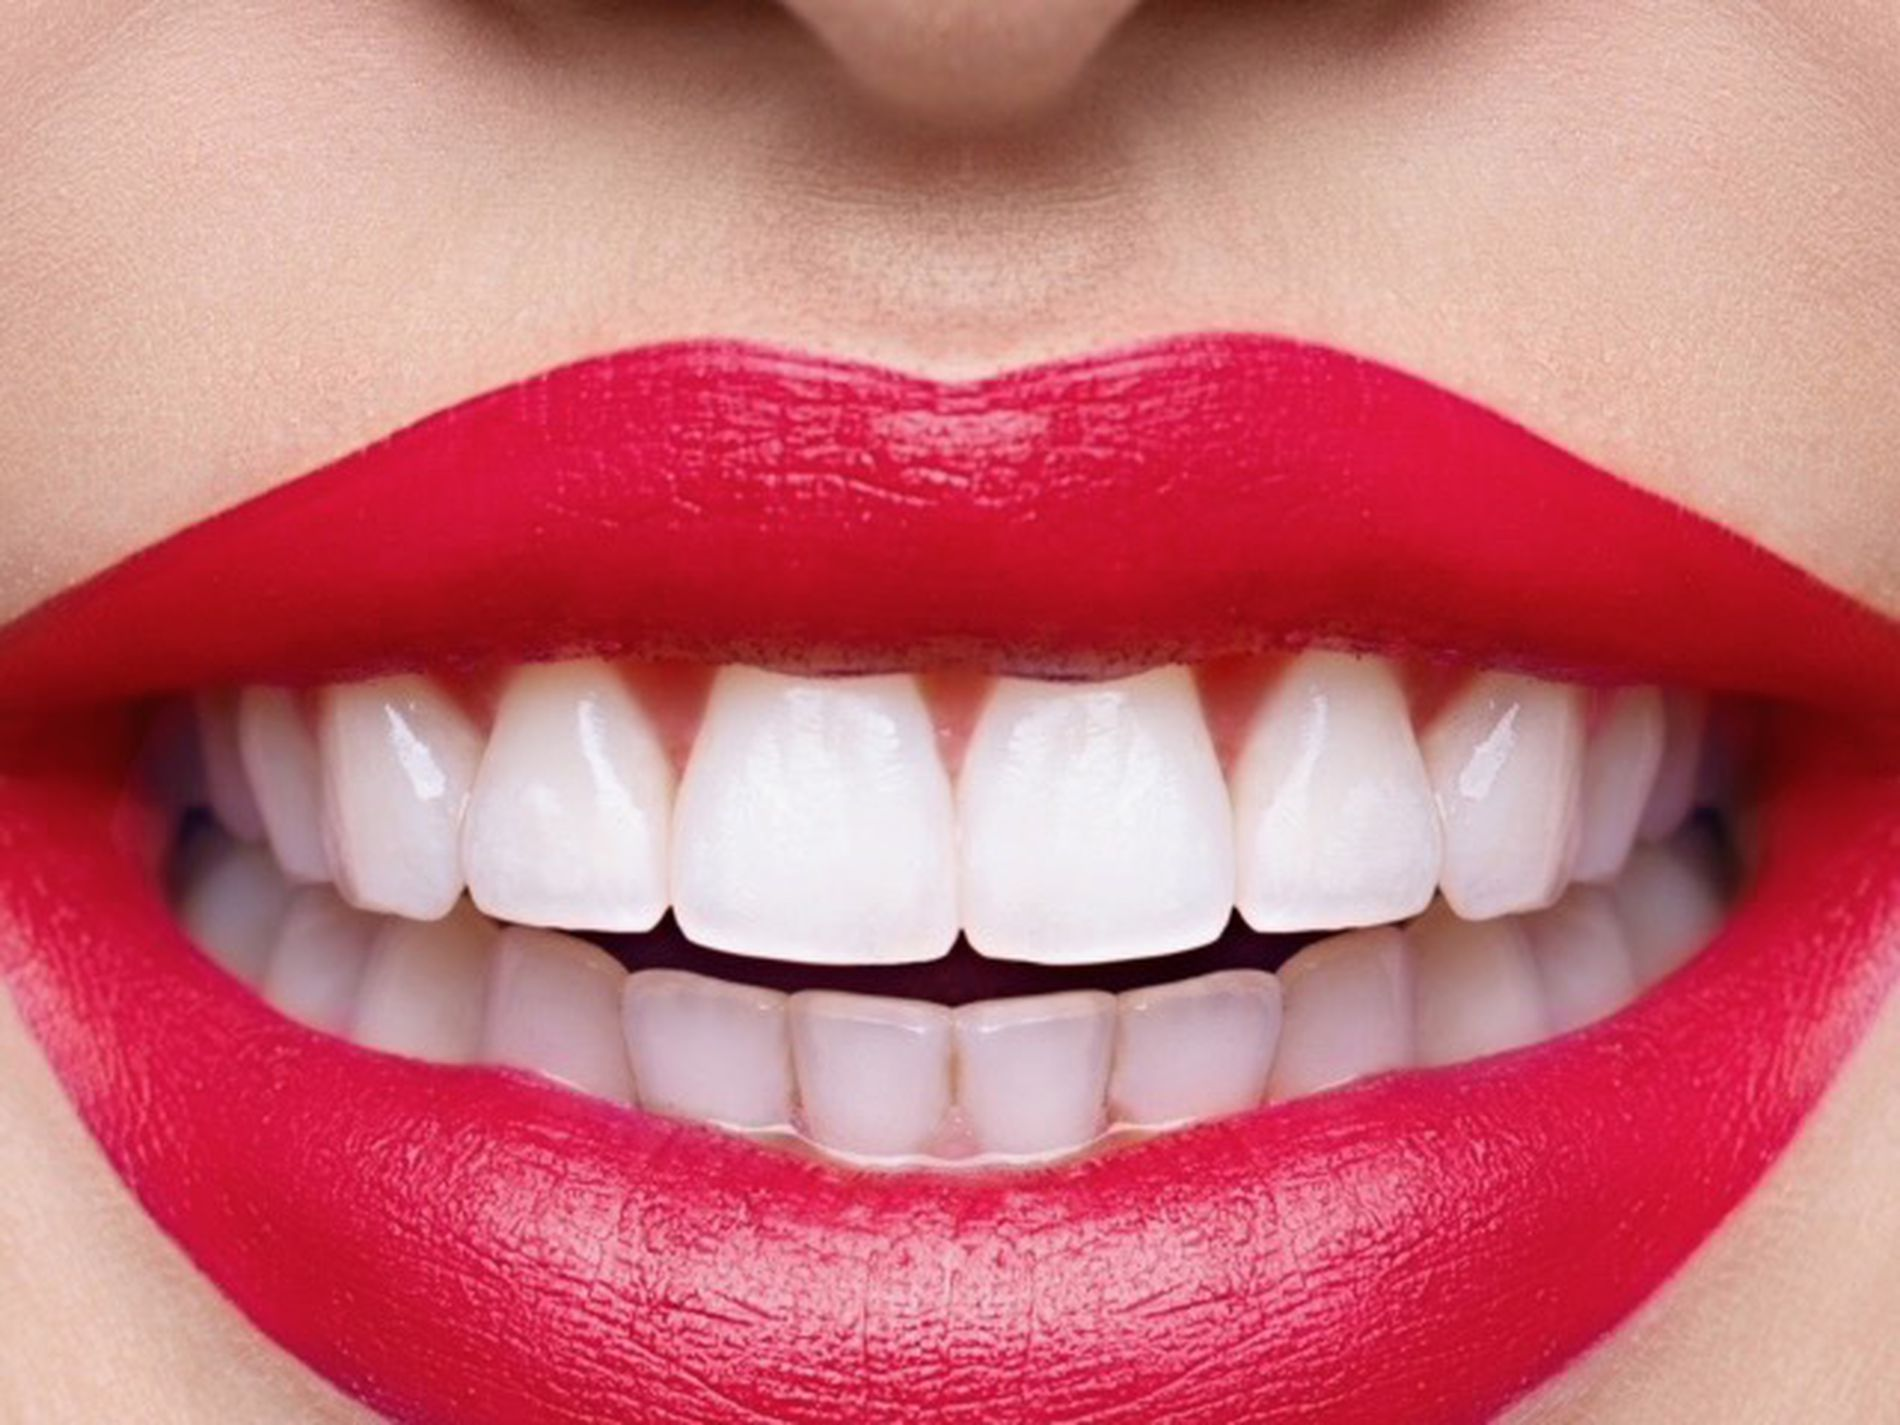 Mobile Teeth Whitening Business For Sale